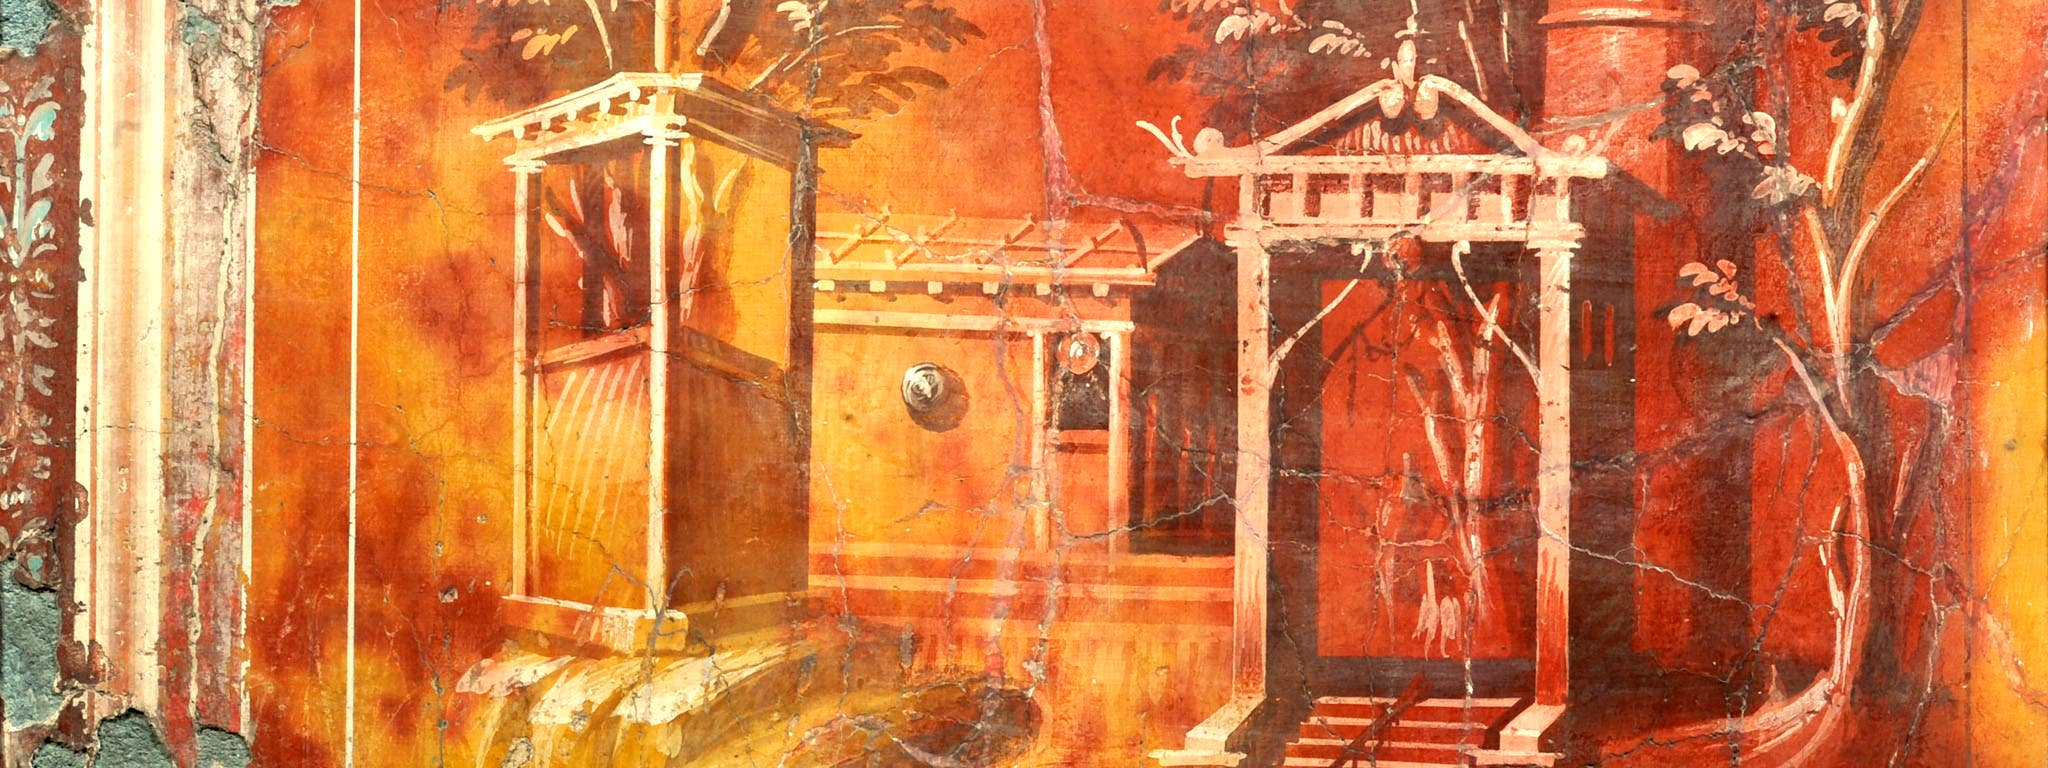 """Fresco from """"Buried by Vesuvius"""" at the Getty Villa"""